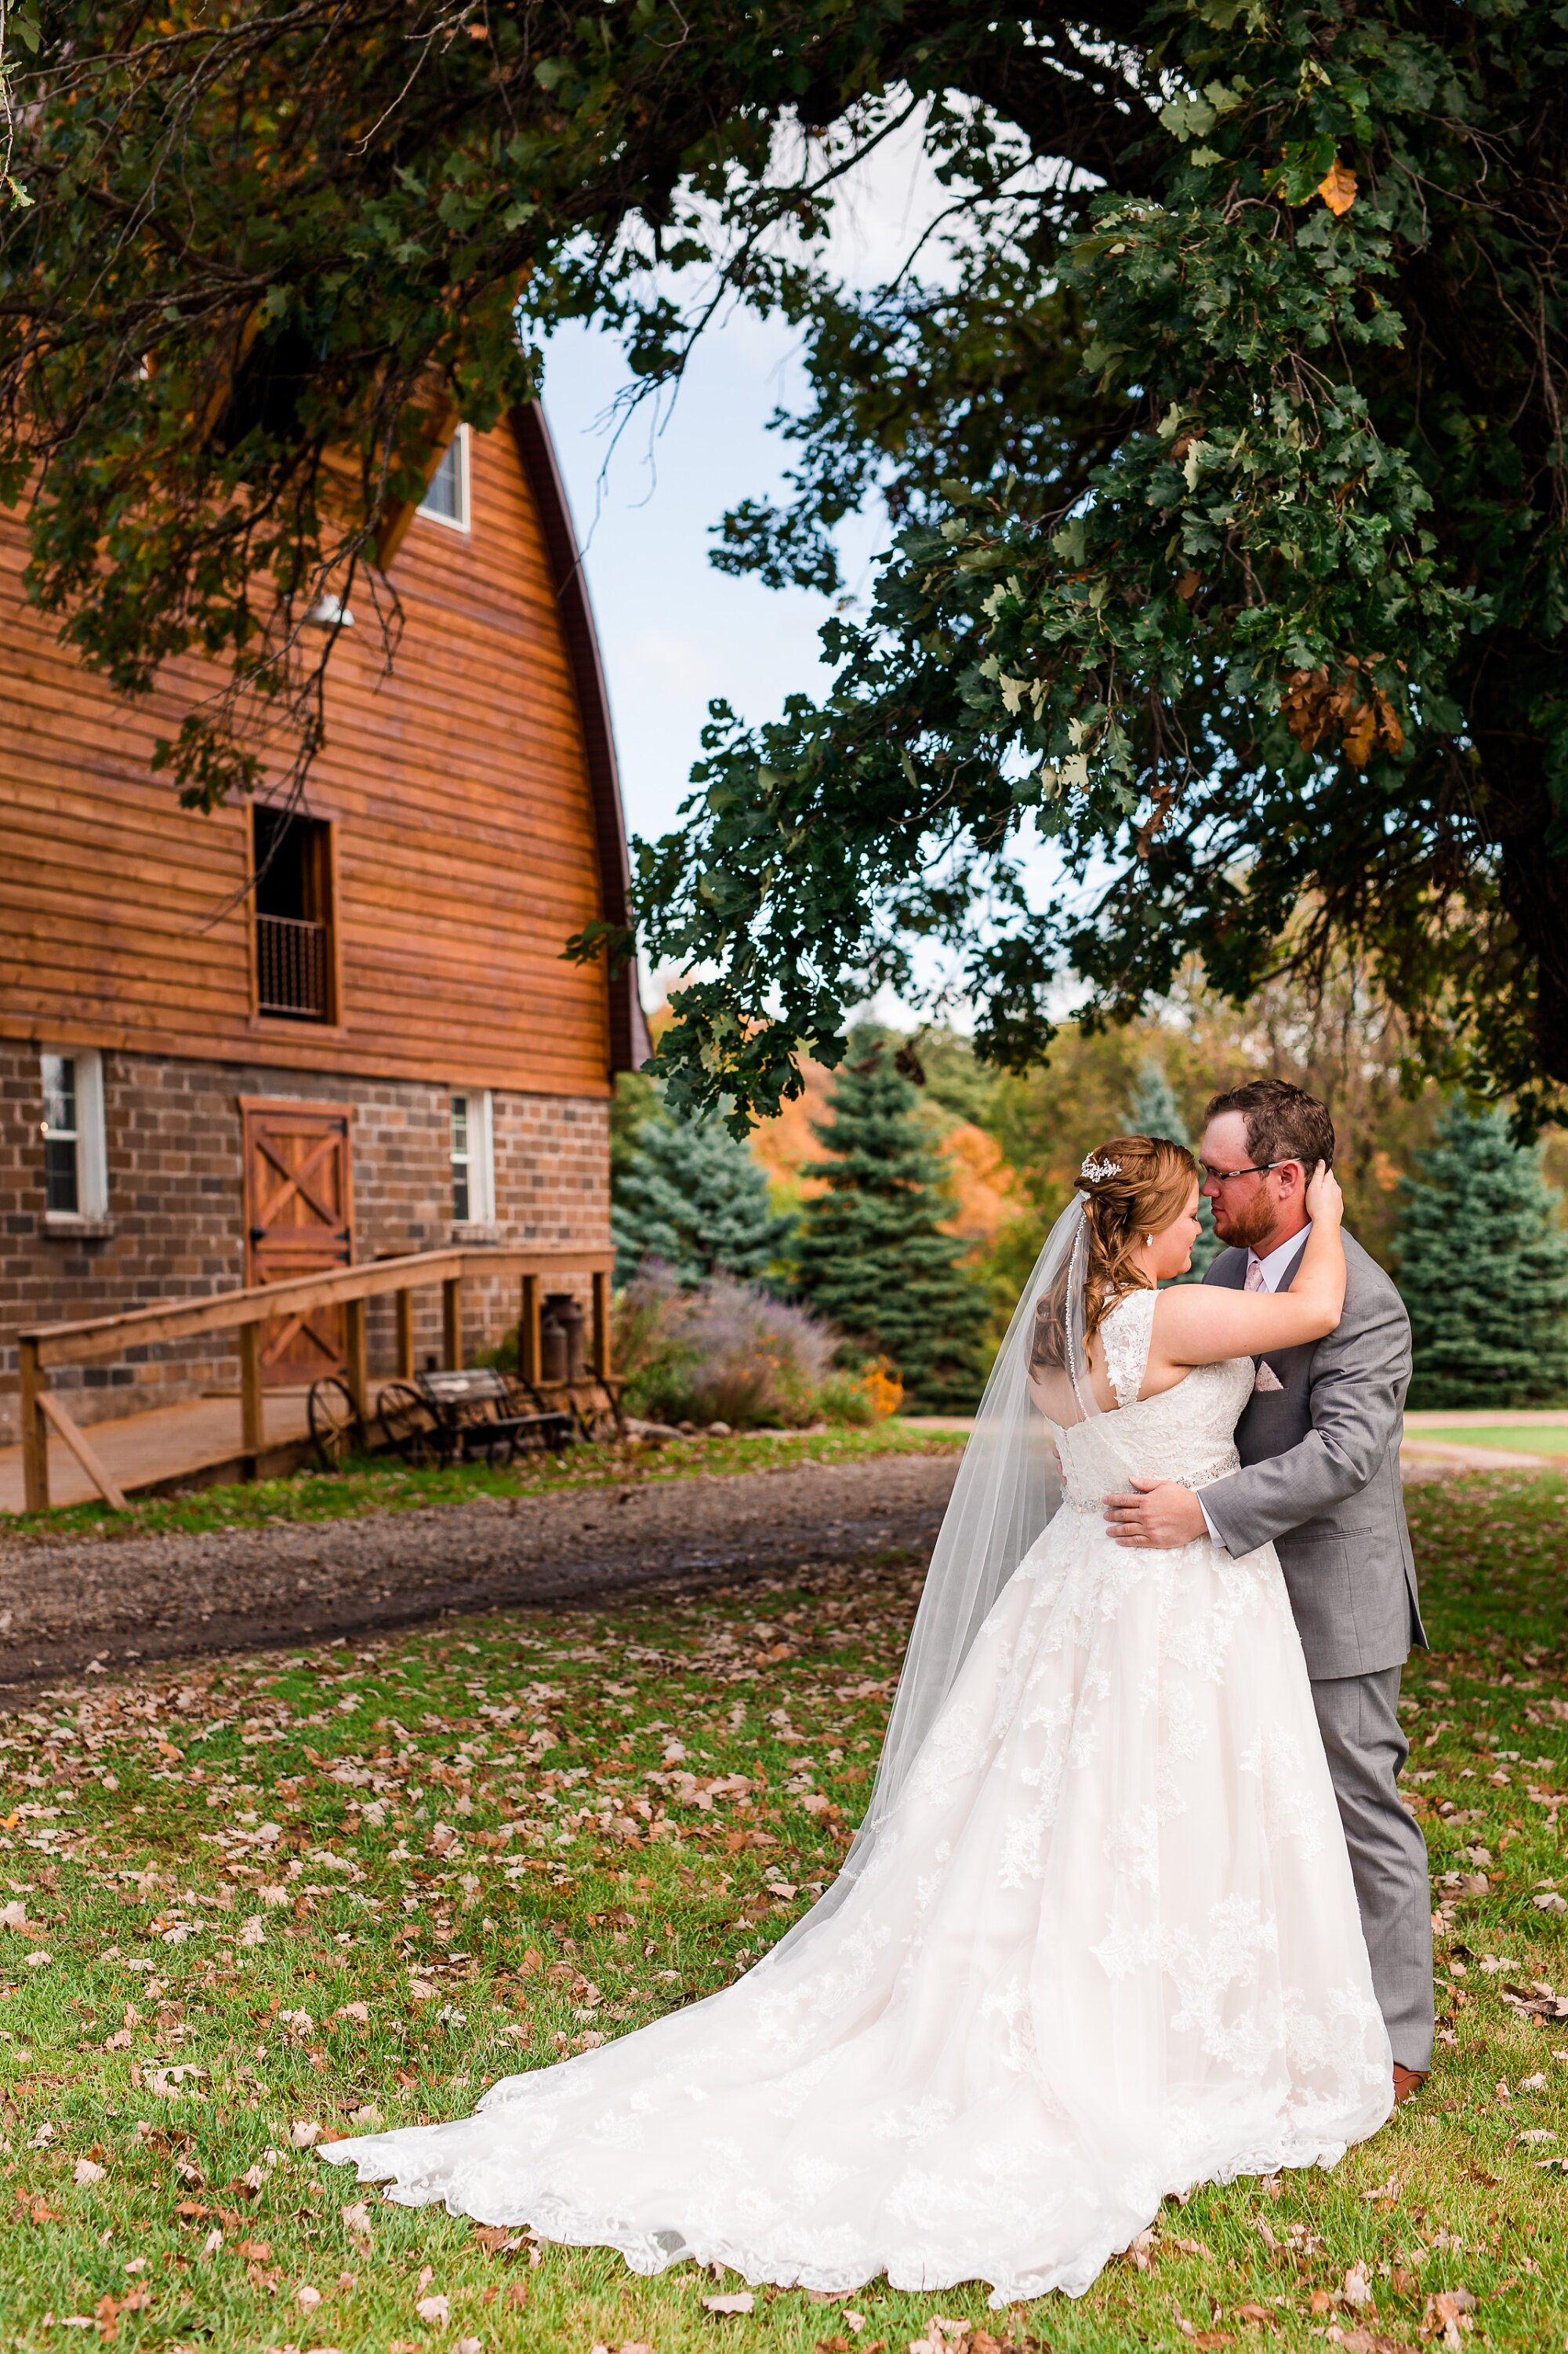 Amber Langerud Photography_Lake Park Minnesota, Outdoor Barn Wedding With Horses_6954.jpg